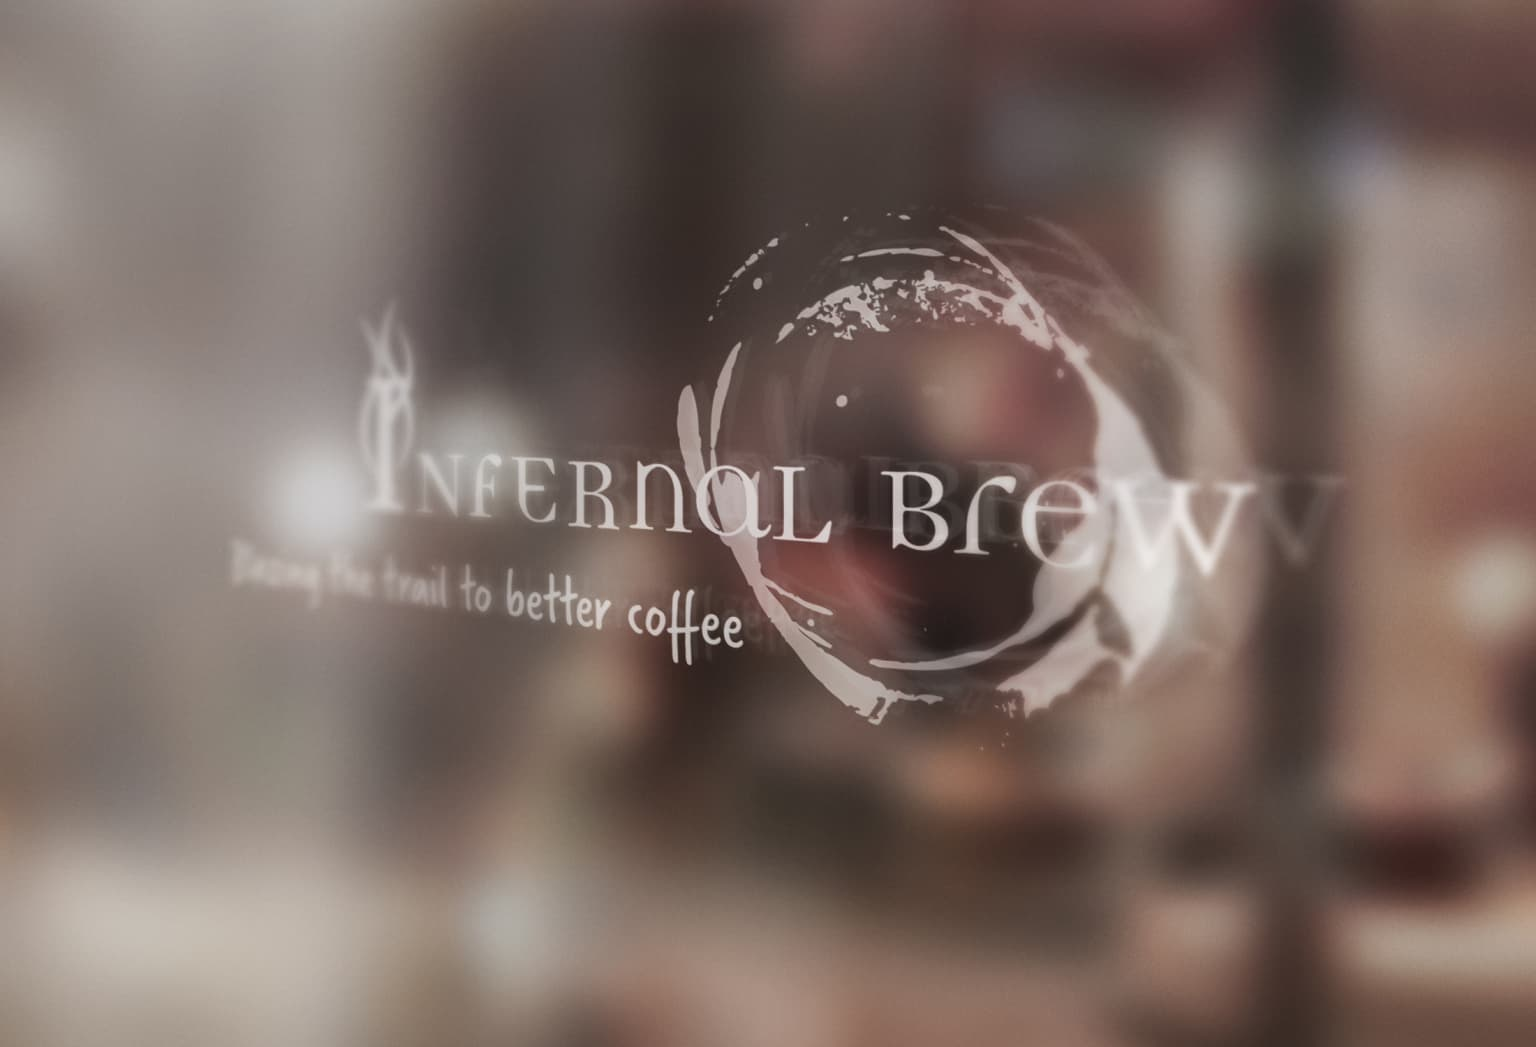 Infernal Brew